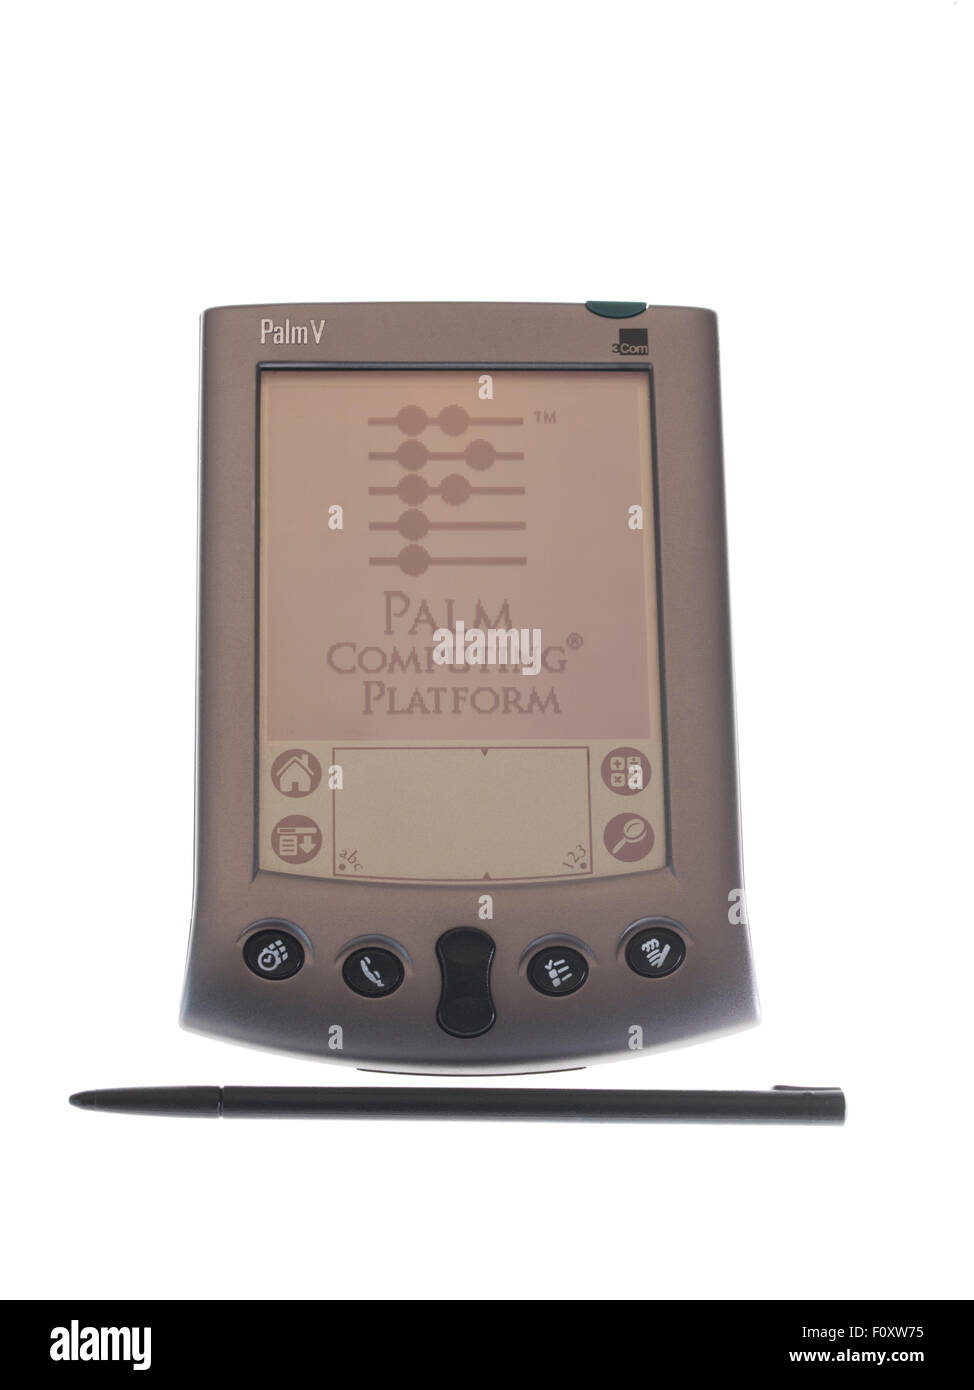 Palm V PDA personal digital assistant by Palm Computing of 3Com released Feb 1999 - Stock Image